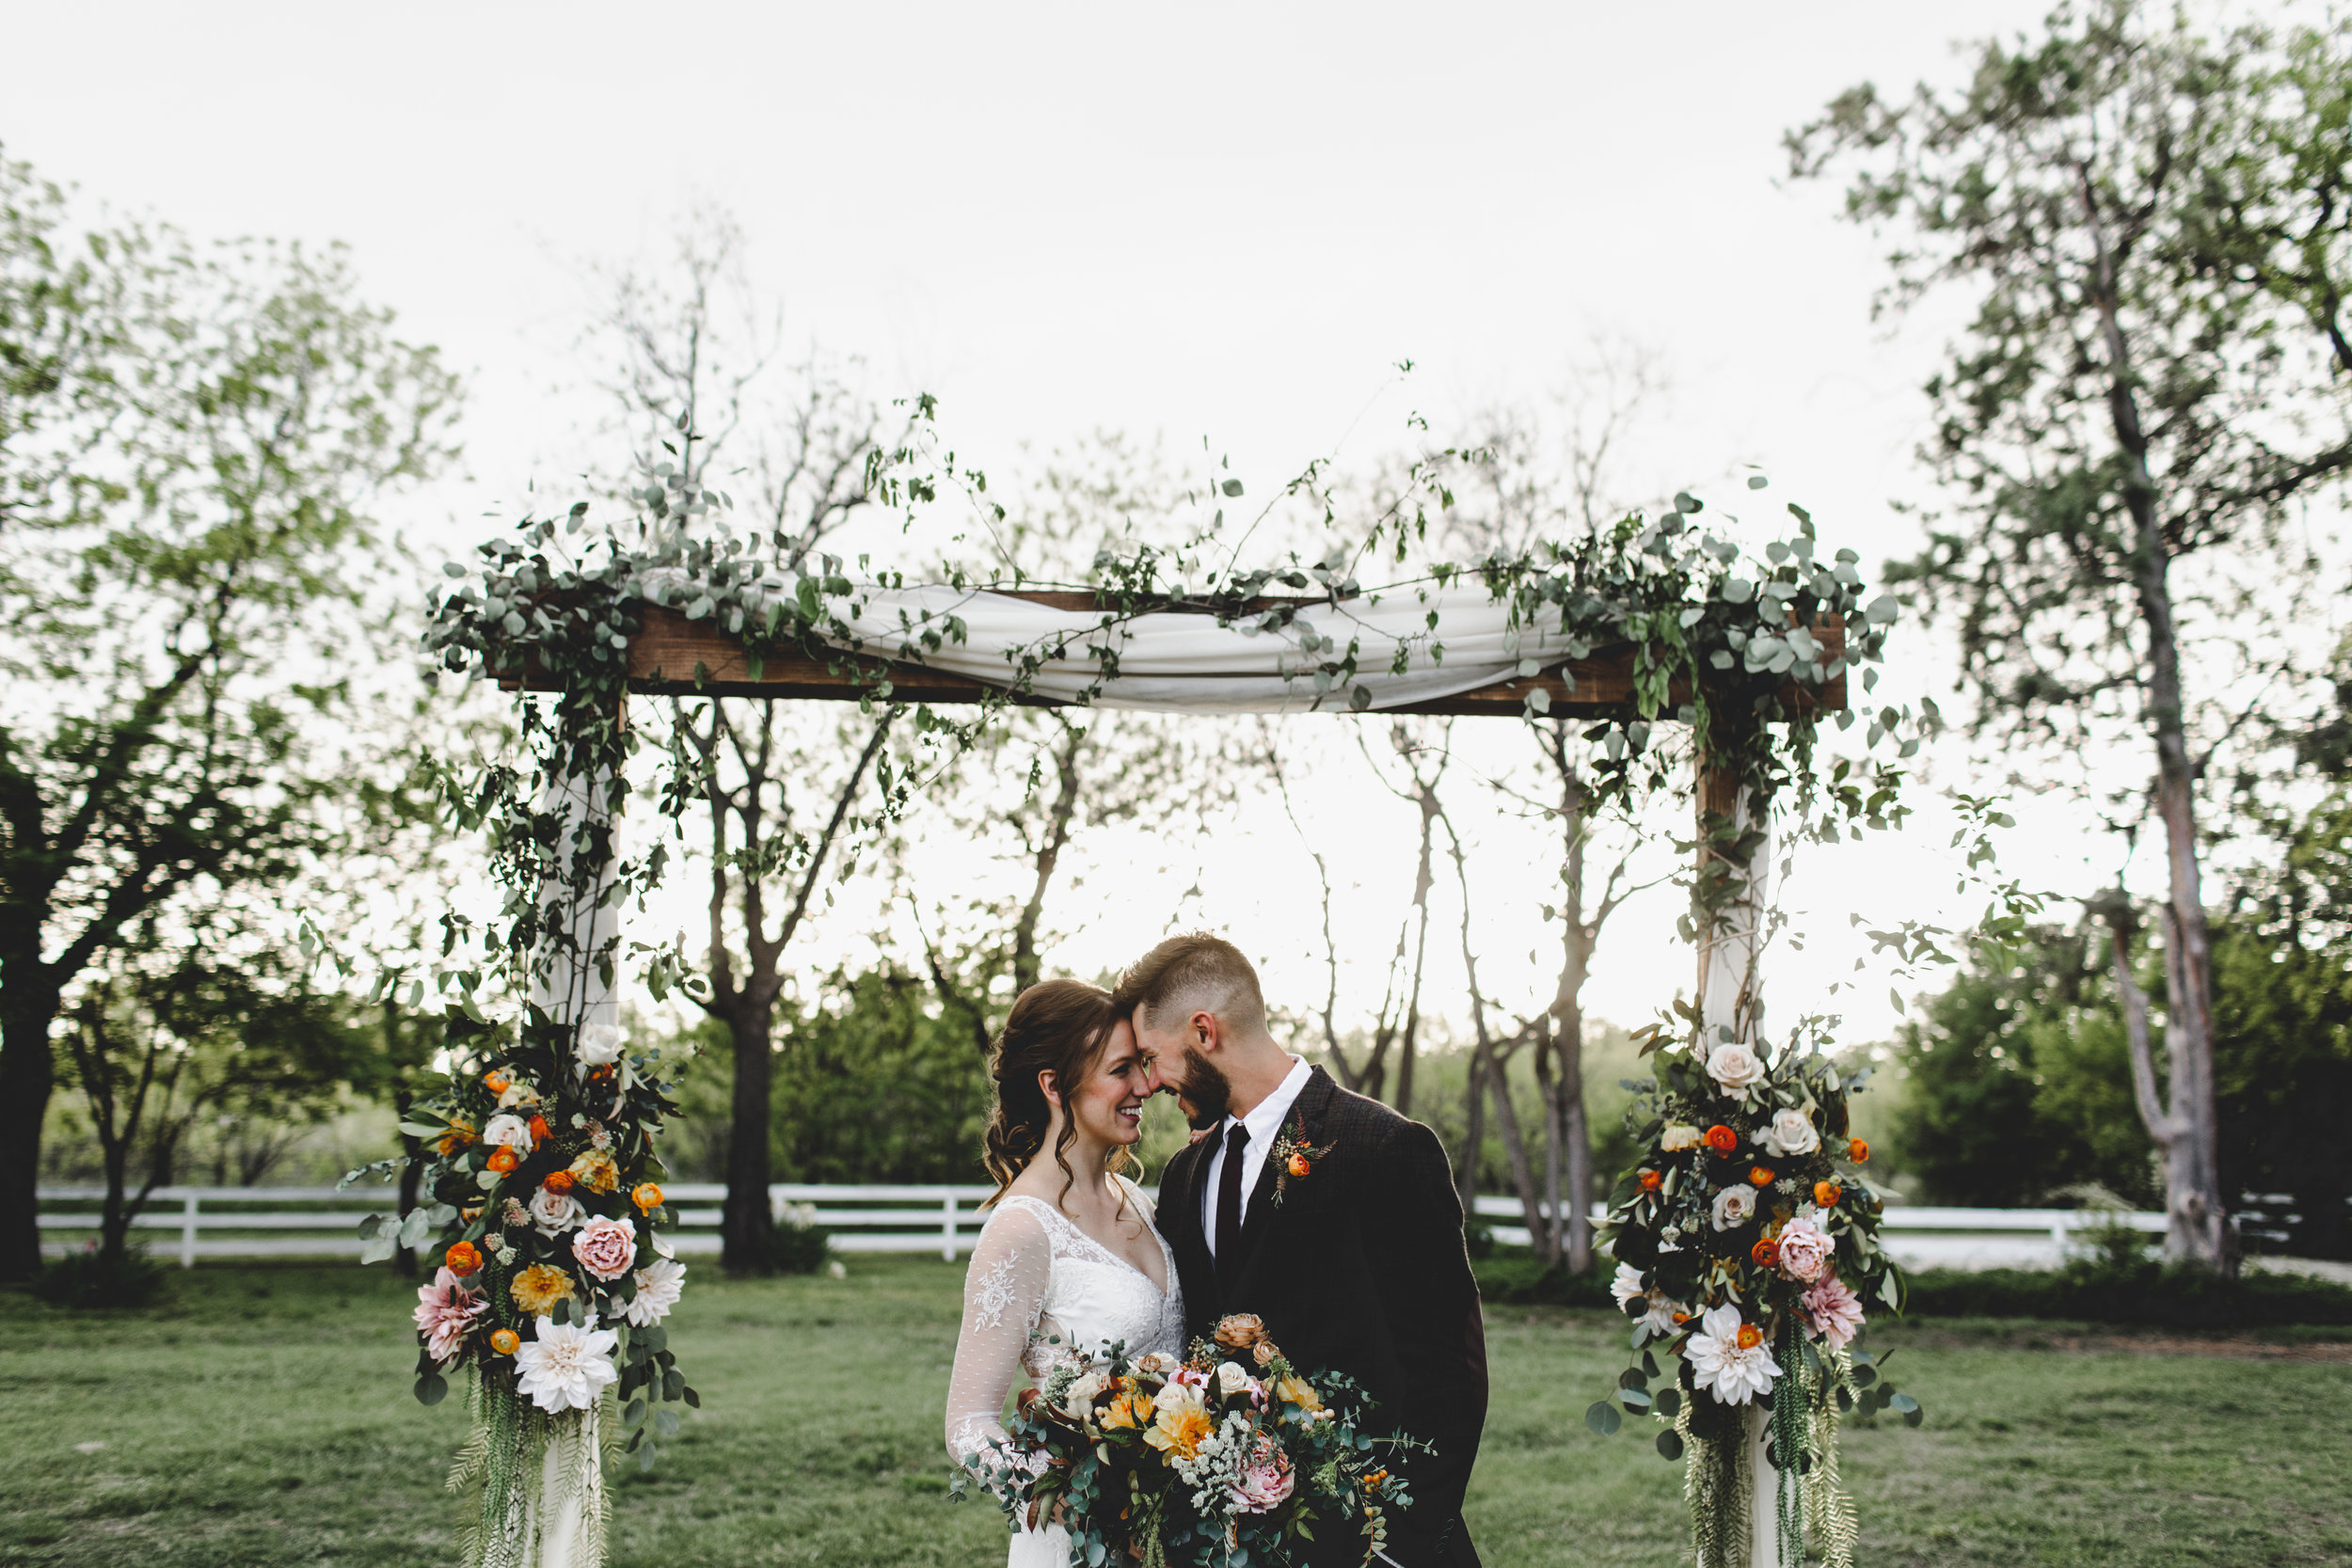 DOUBLE KNOT - Jessie Goggans is an Abilene-based photographer with a cool/matte look capturing all of the intimate and sappy emotions throughout the big day.Wedding packages start at $2,300.